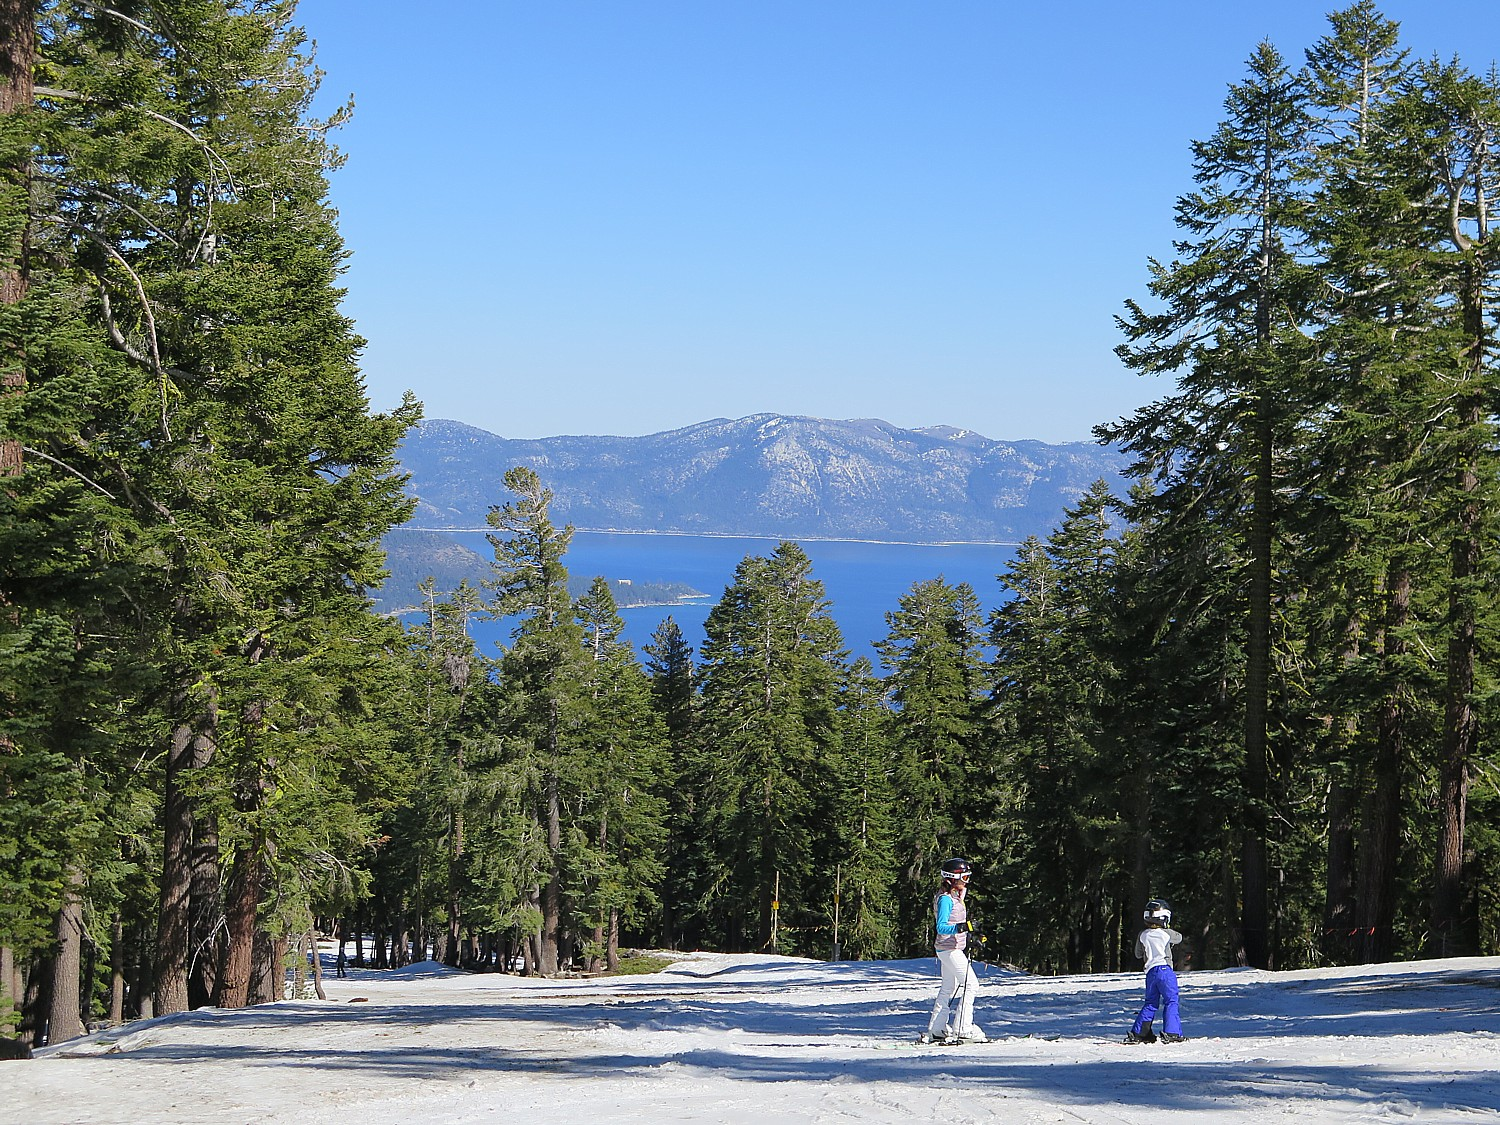 northstar in lake tahoe california scores big hits with new programs